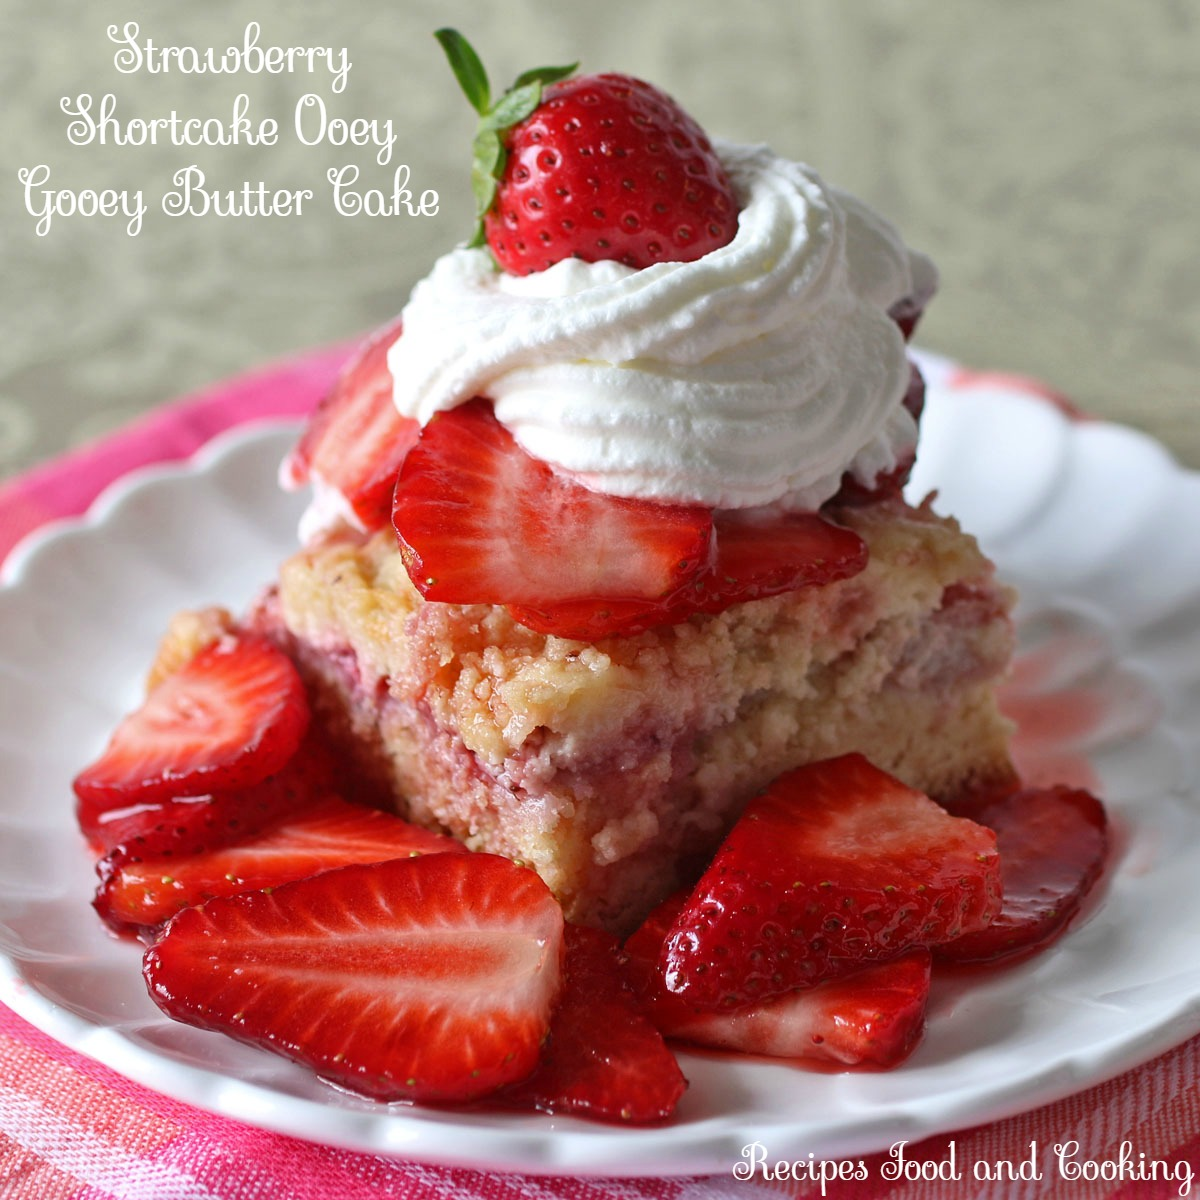 Strawberry Shortcake Ooey Gooey Butter Cake Recipes Food and Cooking